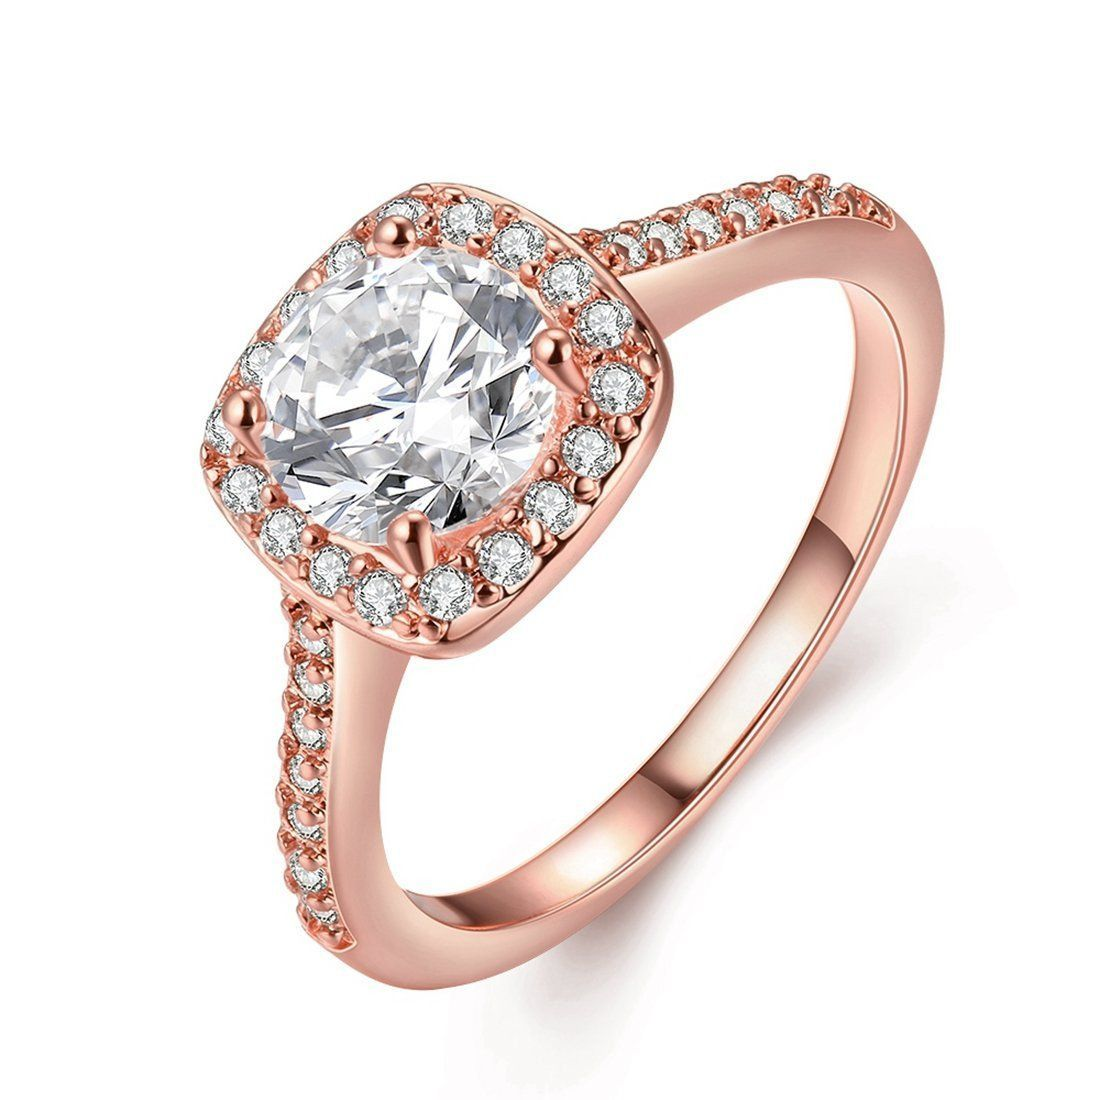 18k Rose Gold TIVANI Collection Jewelry Rings Jewelry Selling Tips